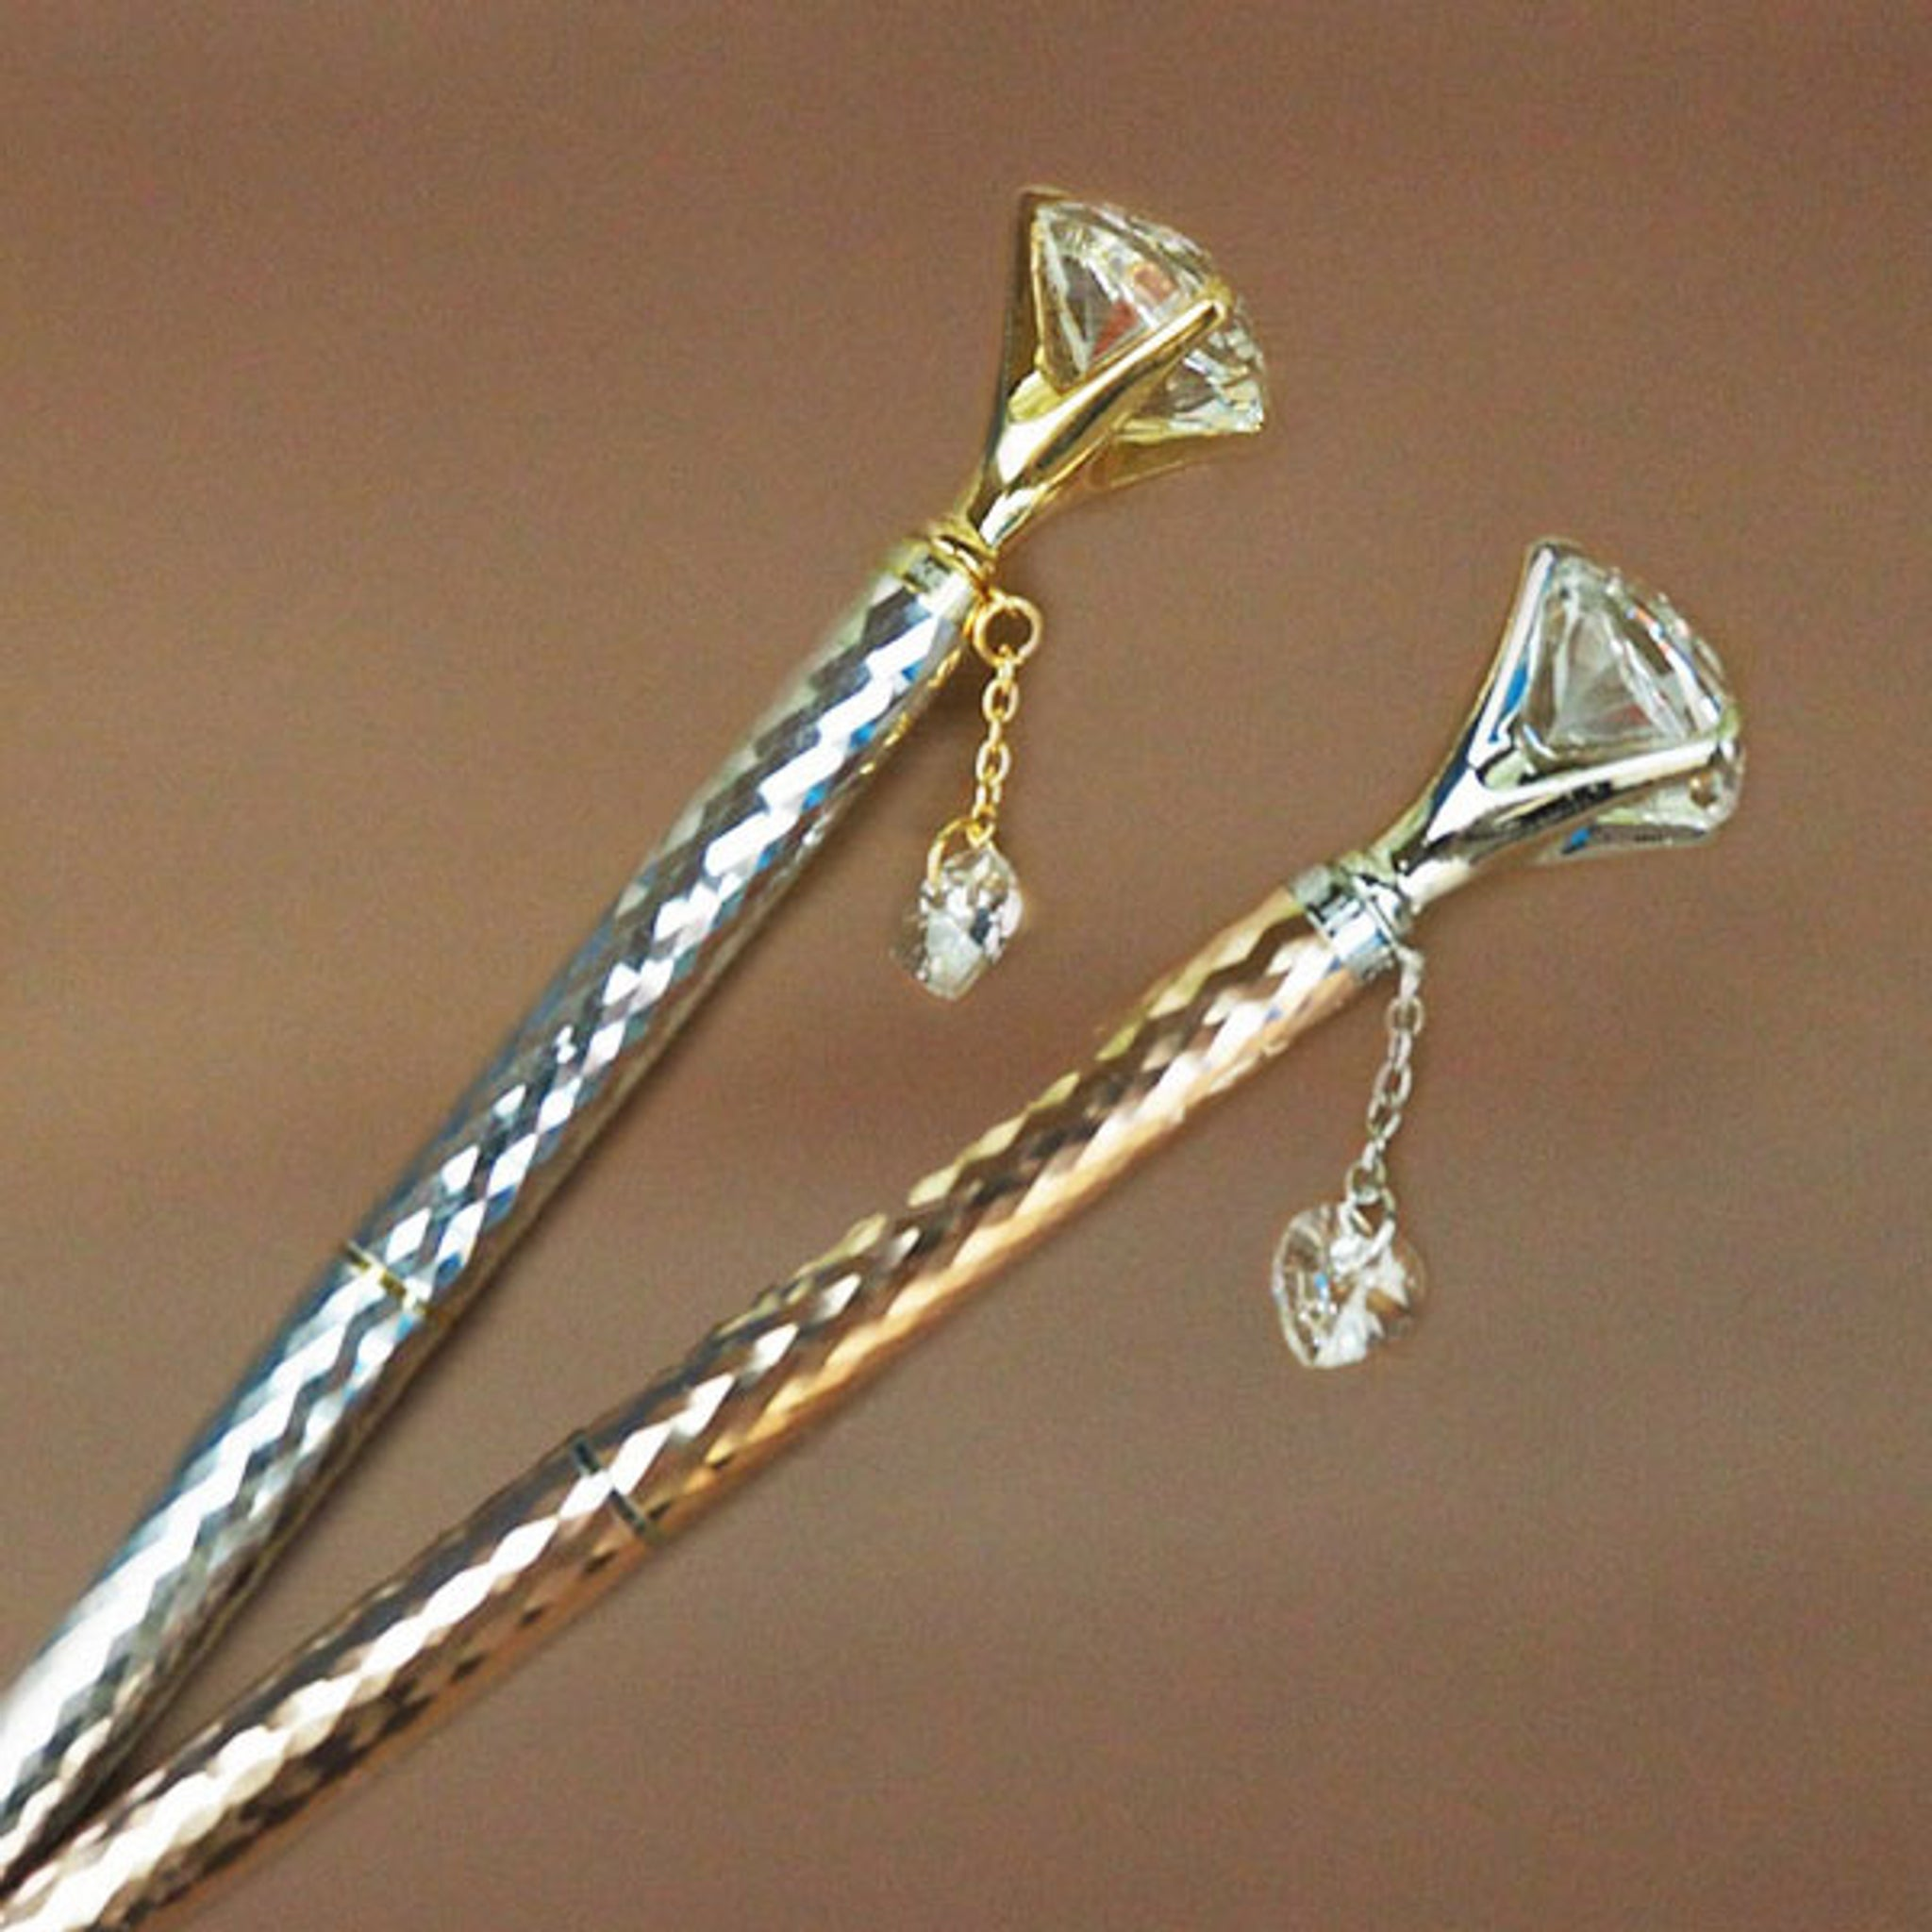 Helen Kelly Diamond Charm Pen Silver